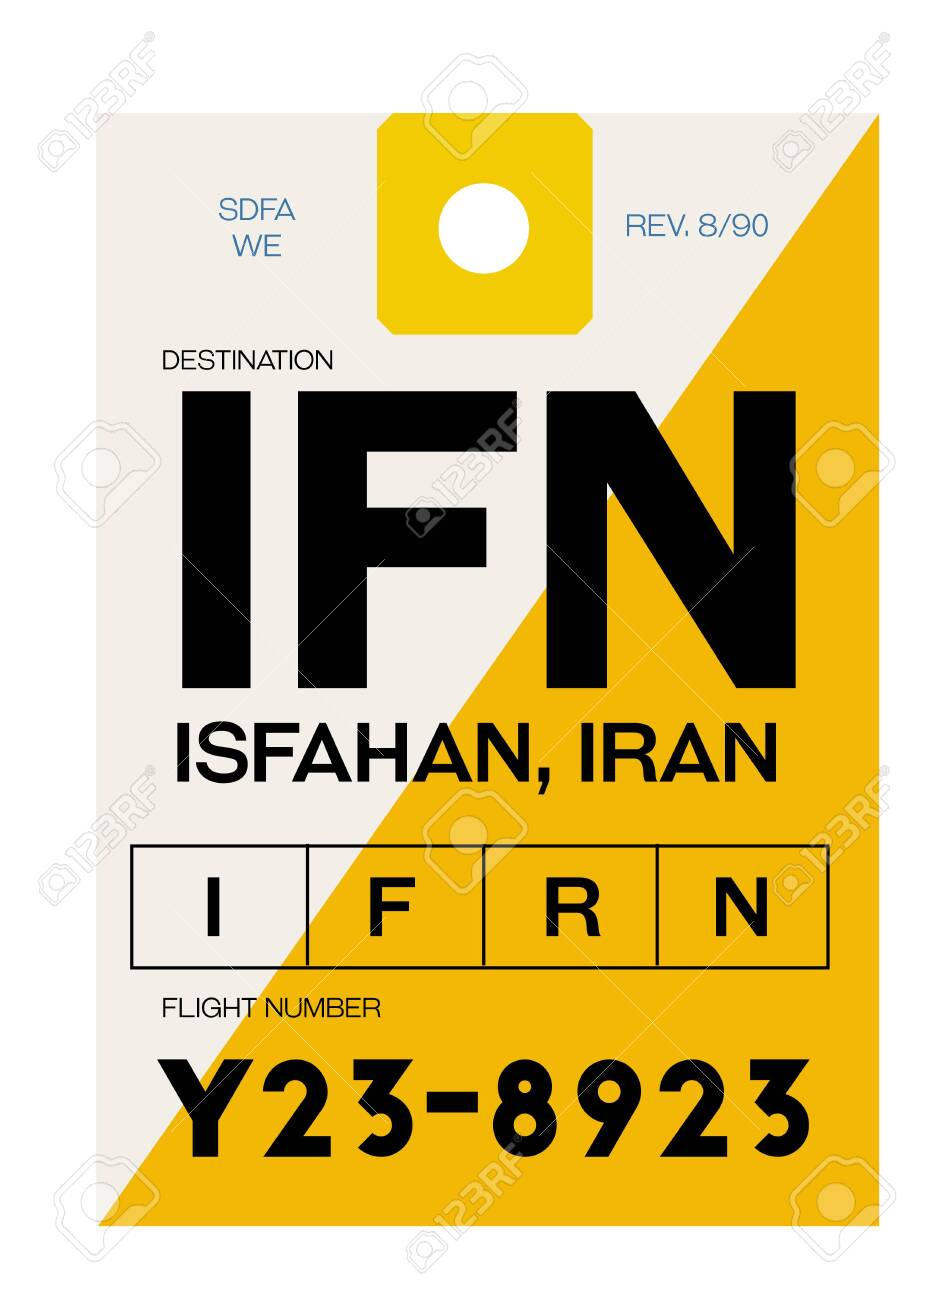 Isfahan realistically looking airport luggage tag illustration - 124362505